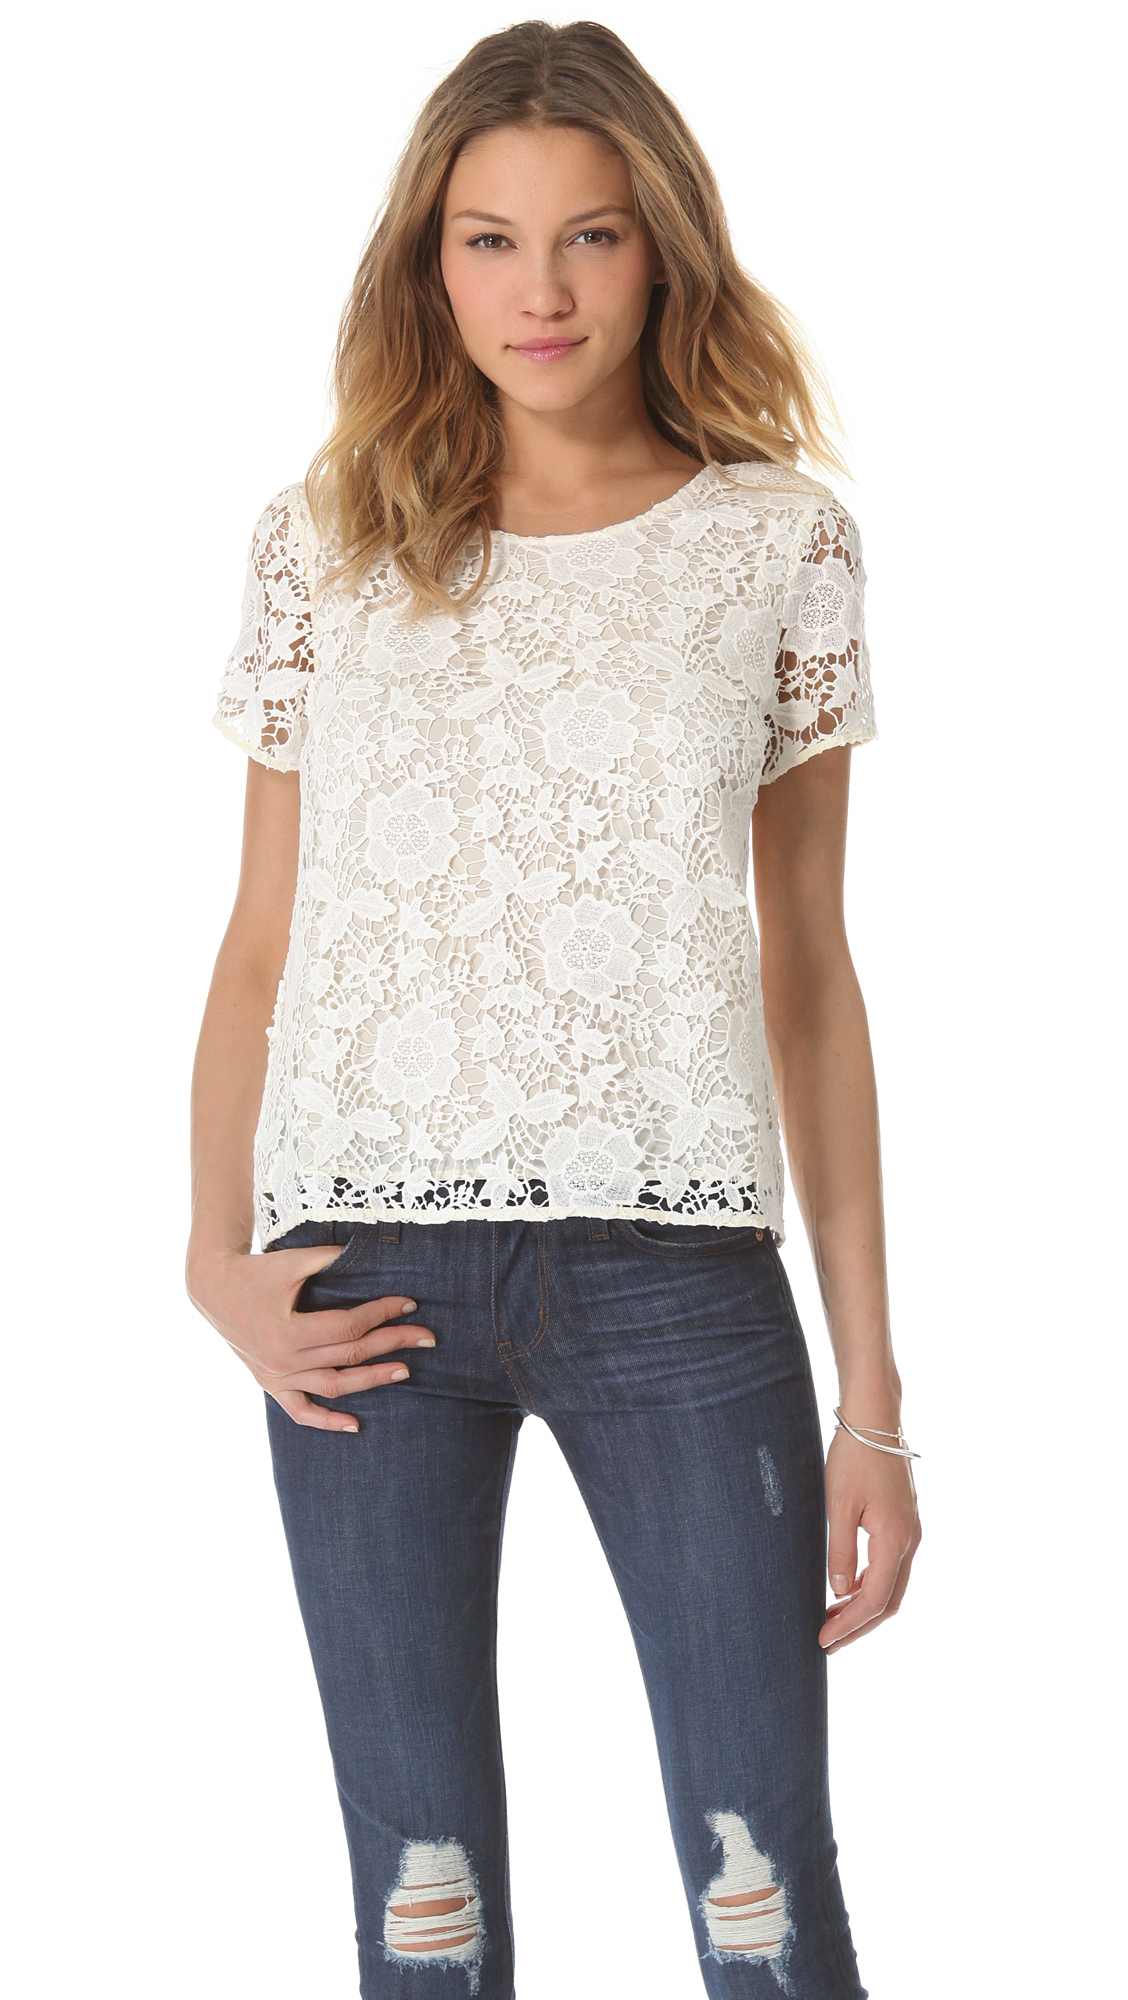 White Tee Shirt Womens